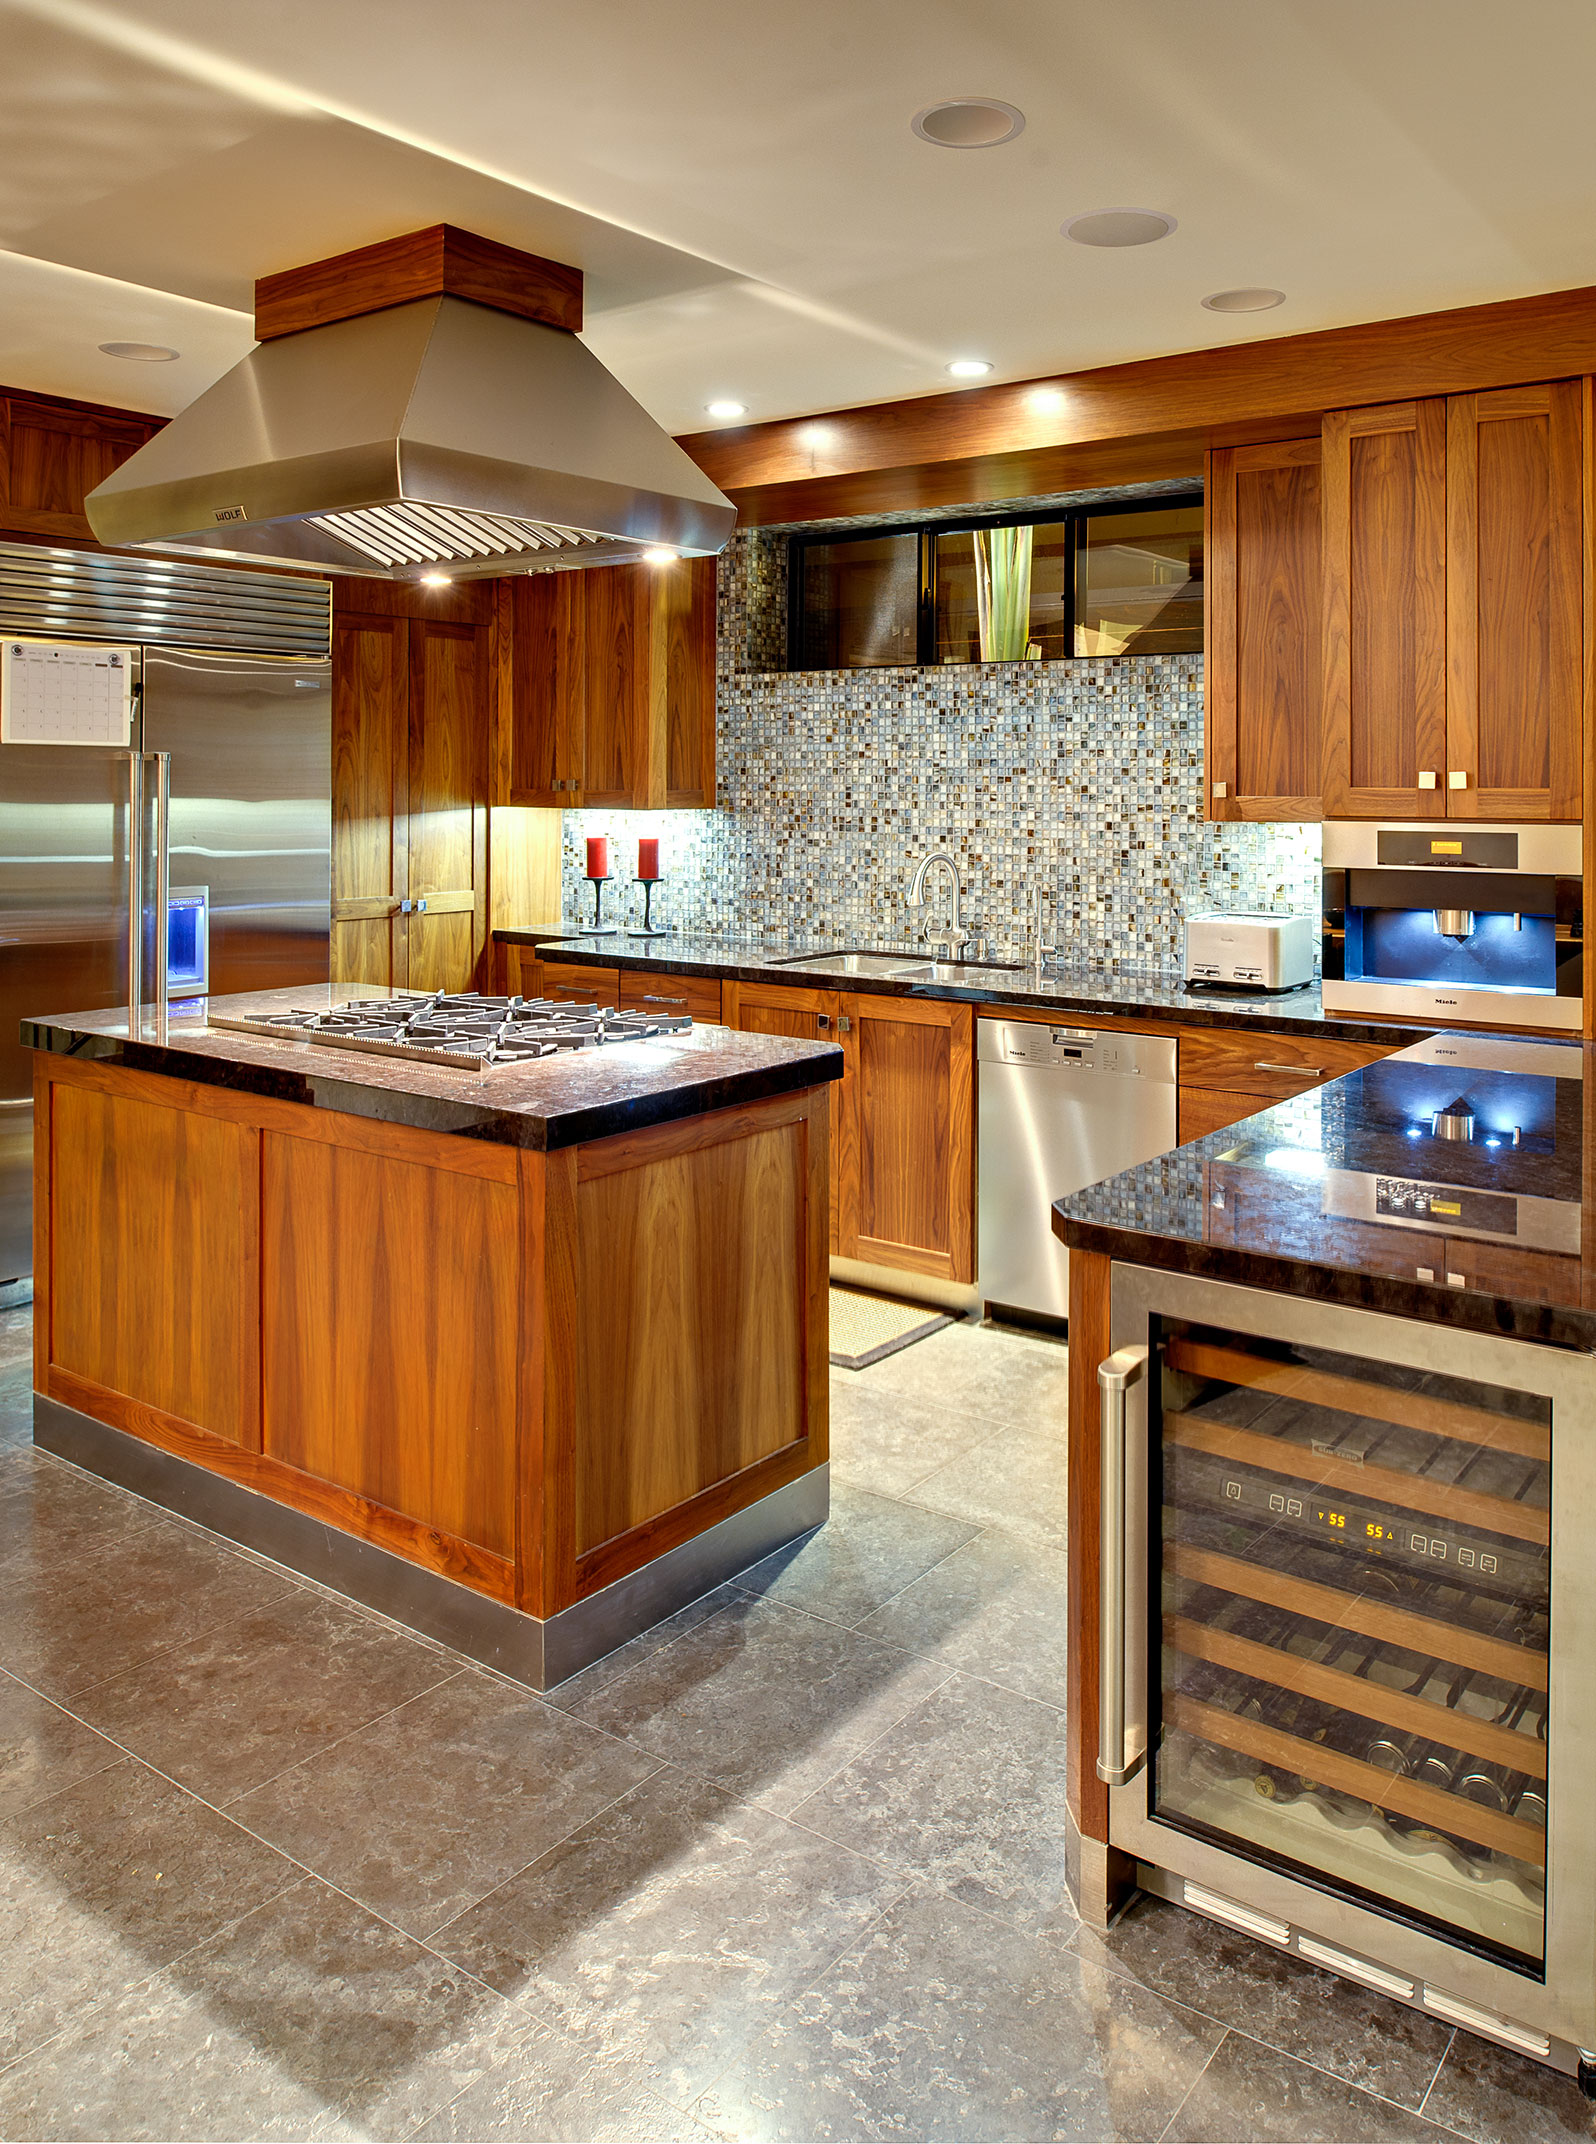 6-Modern-kitchen-los-angeles-SiliconBay-luxury.jpg